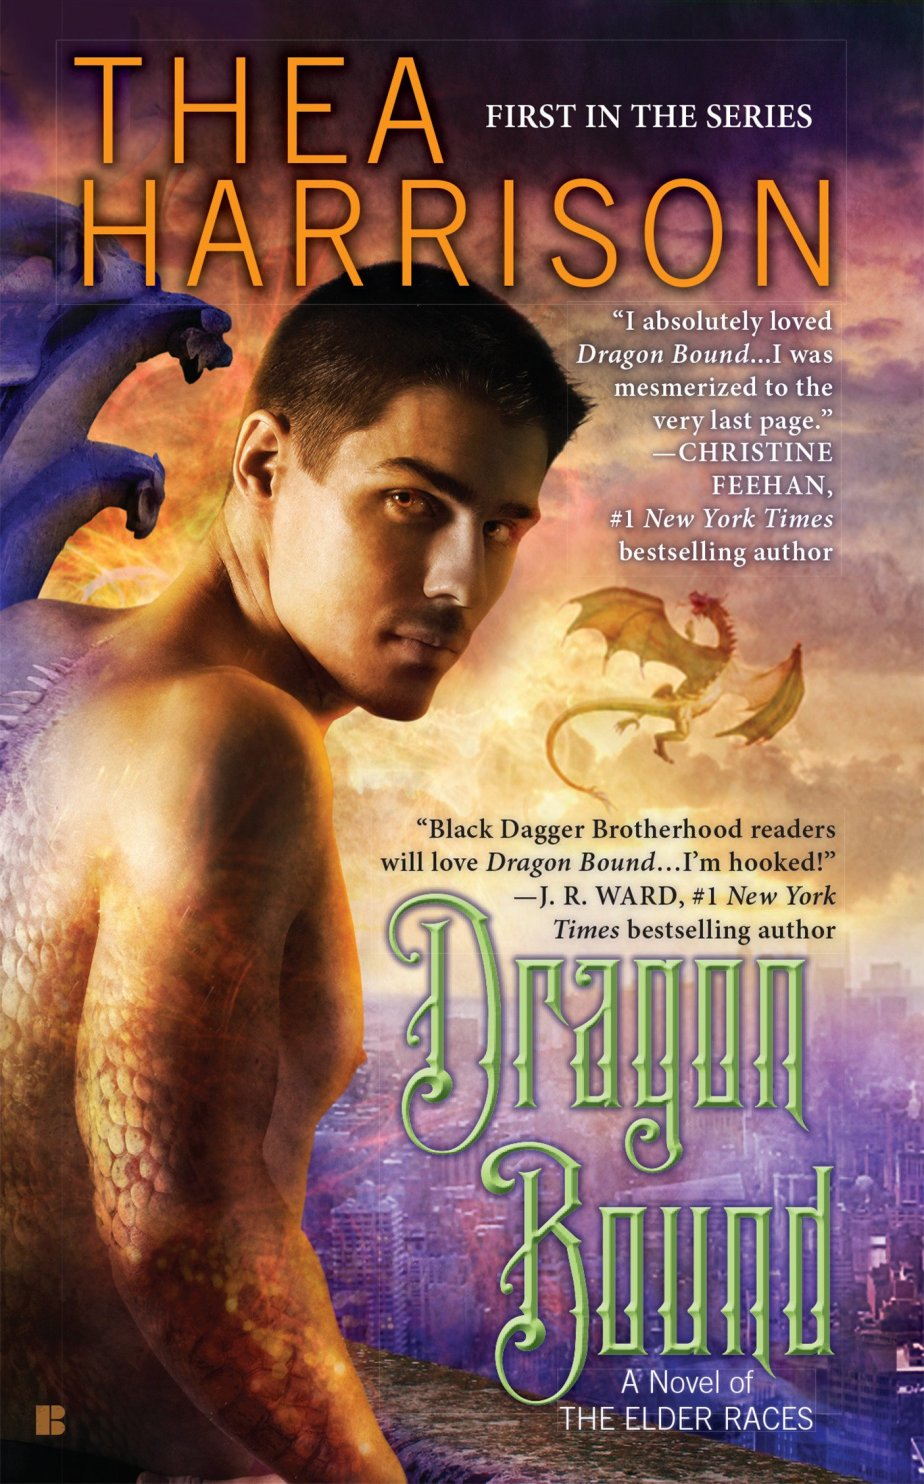 Book Review: 7 Dreamy Things about DRAGON BOUND by TheaHarrison